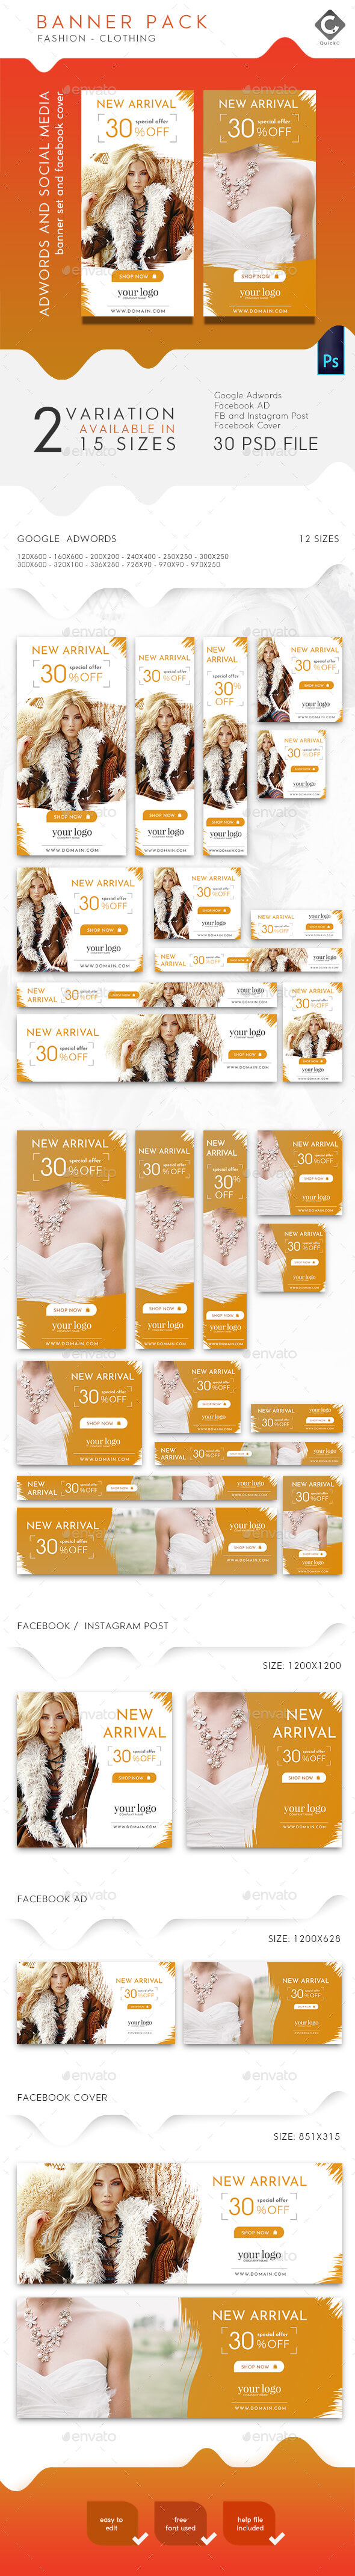 Fashion Banner Pack - Banners & Ads Web Elements